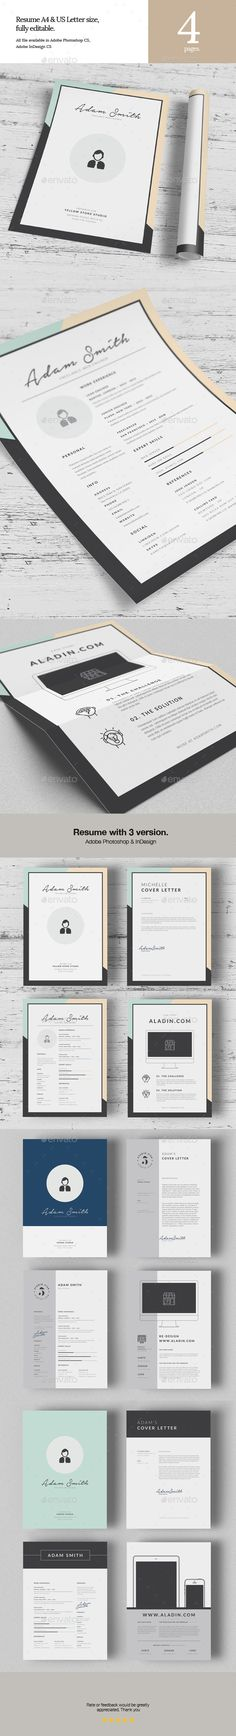 Resume Resume and Stationery - font to use for resume